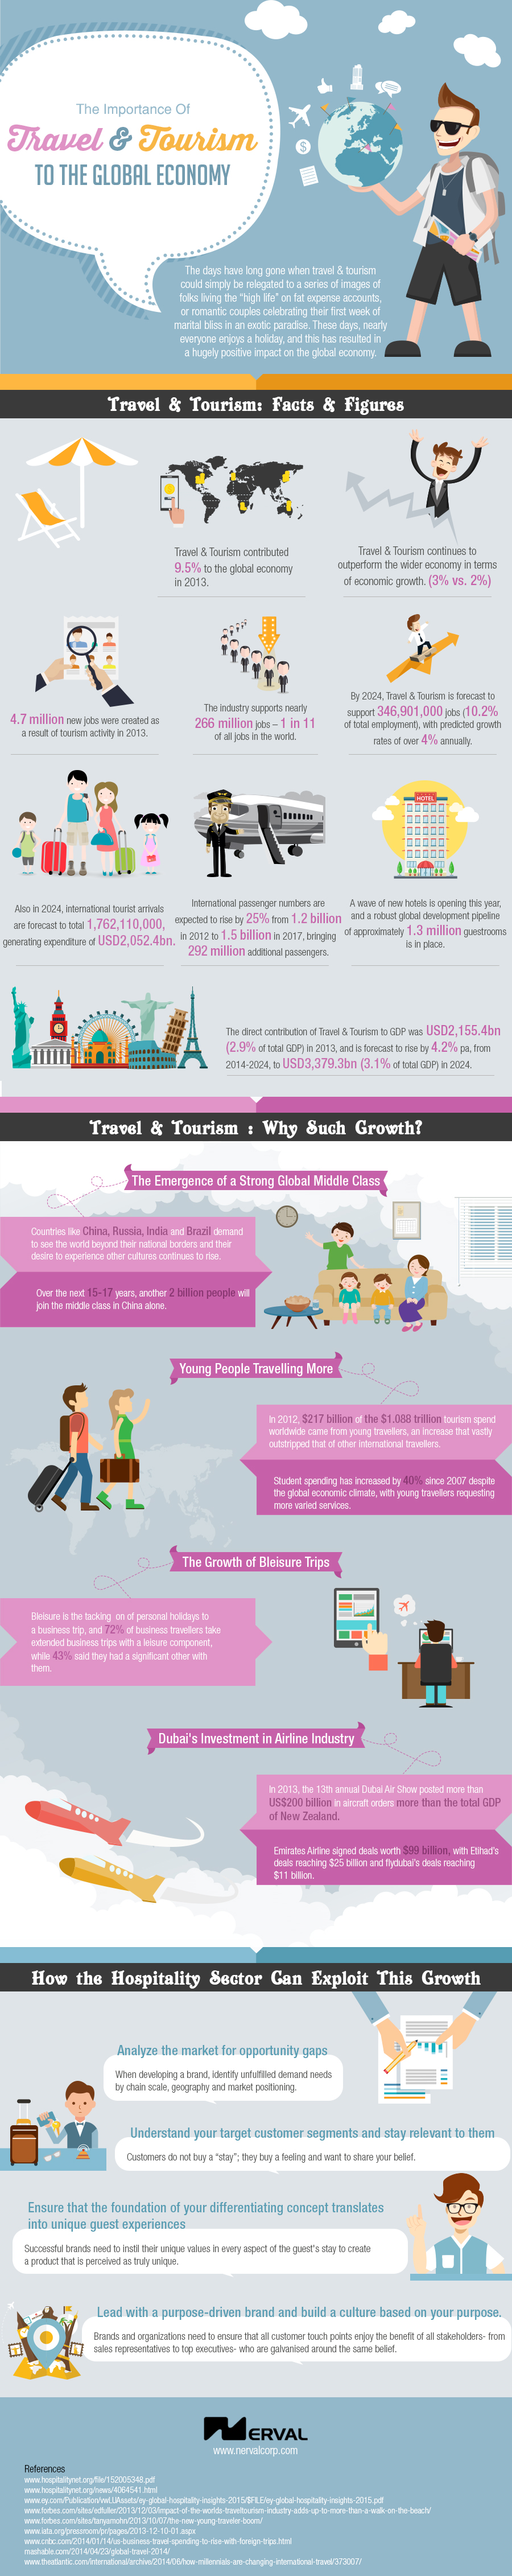 The-Importance-of-Travel-and-Tourism-to-the-Global-Economy (1)